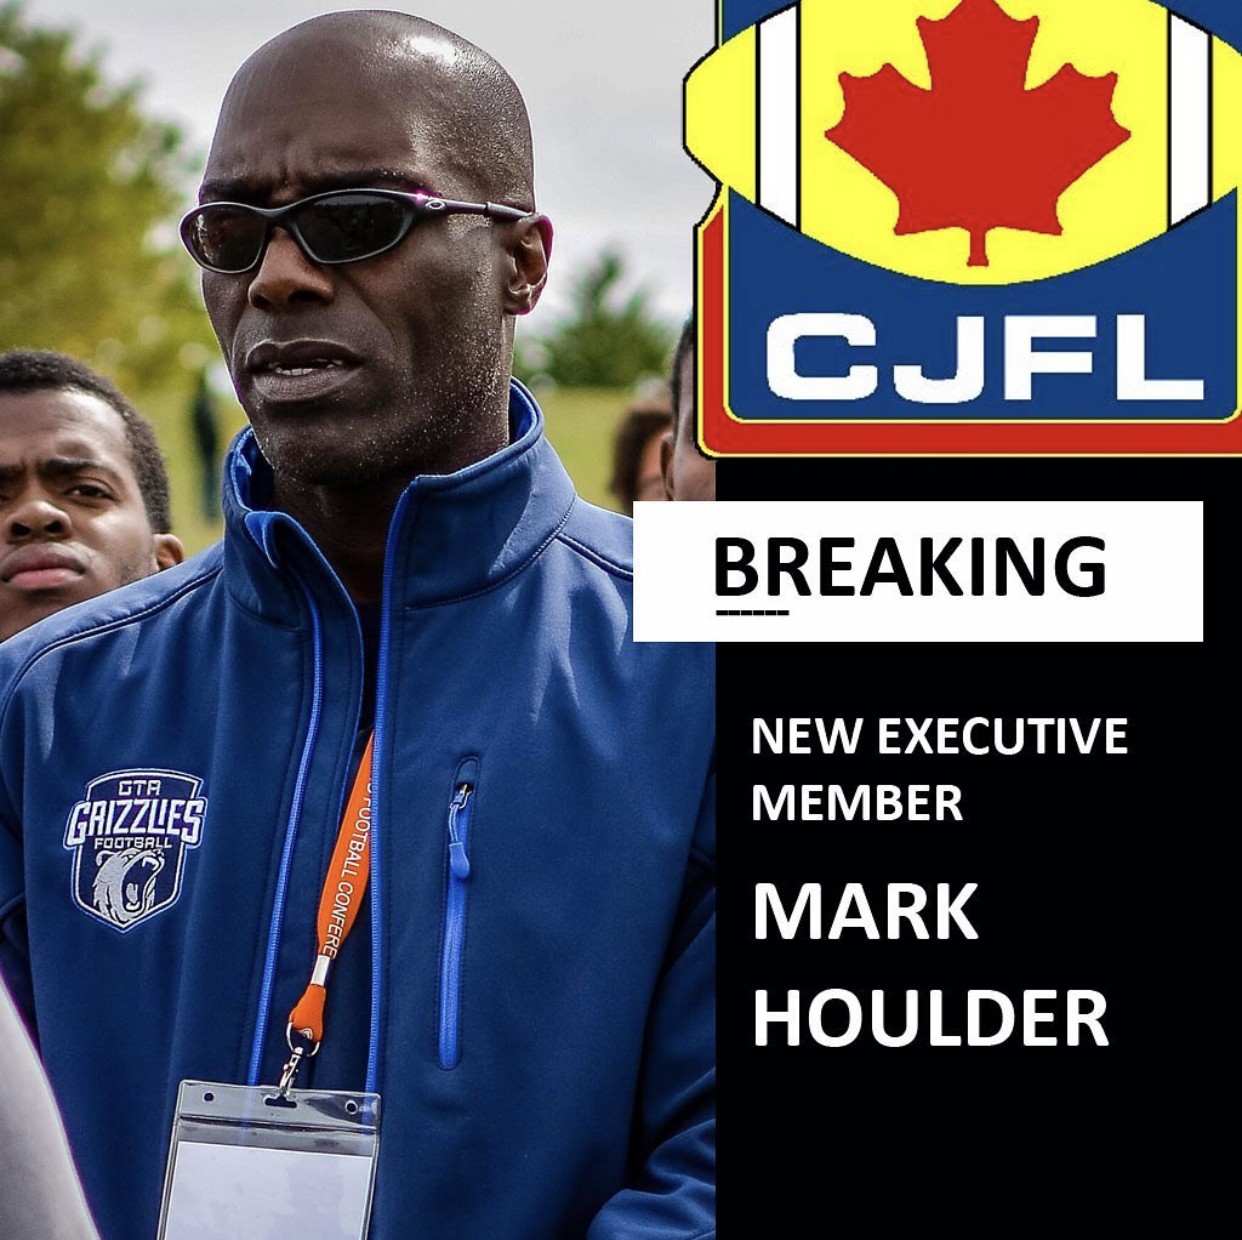 CONGRATULATIONS TO OUR COACH HOULDER!!